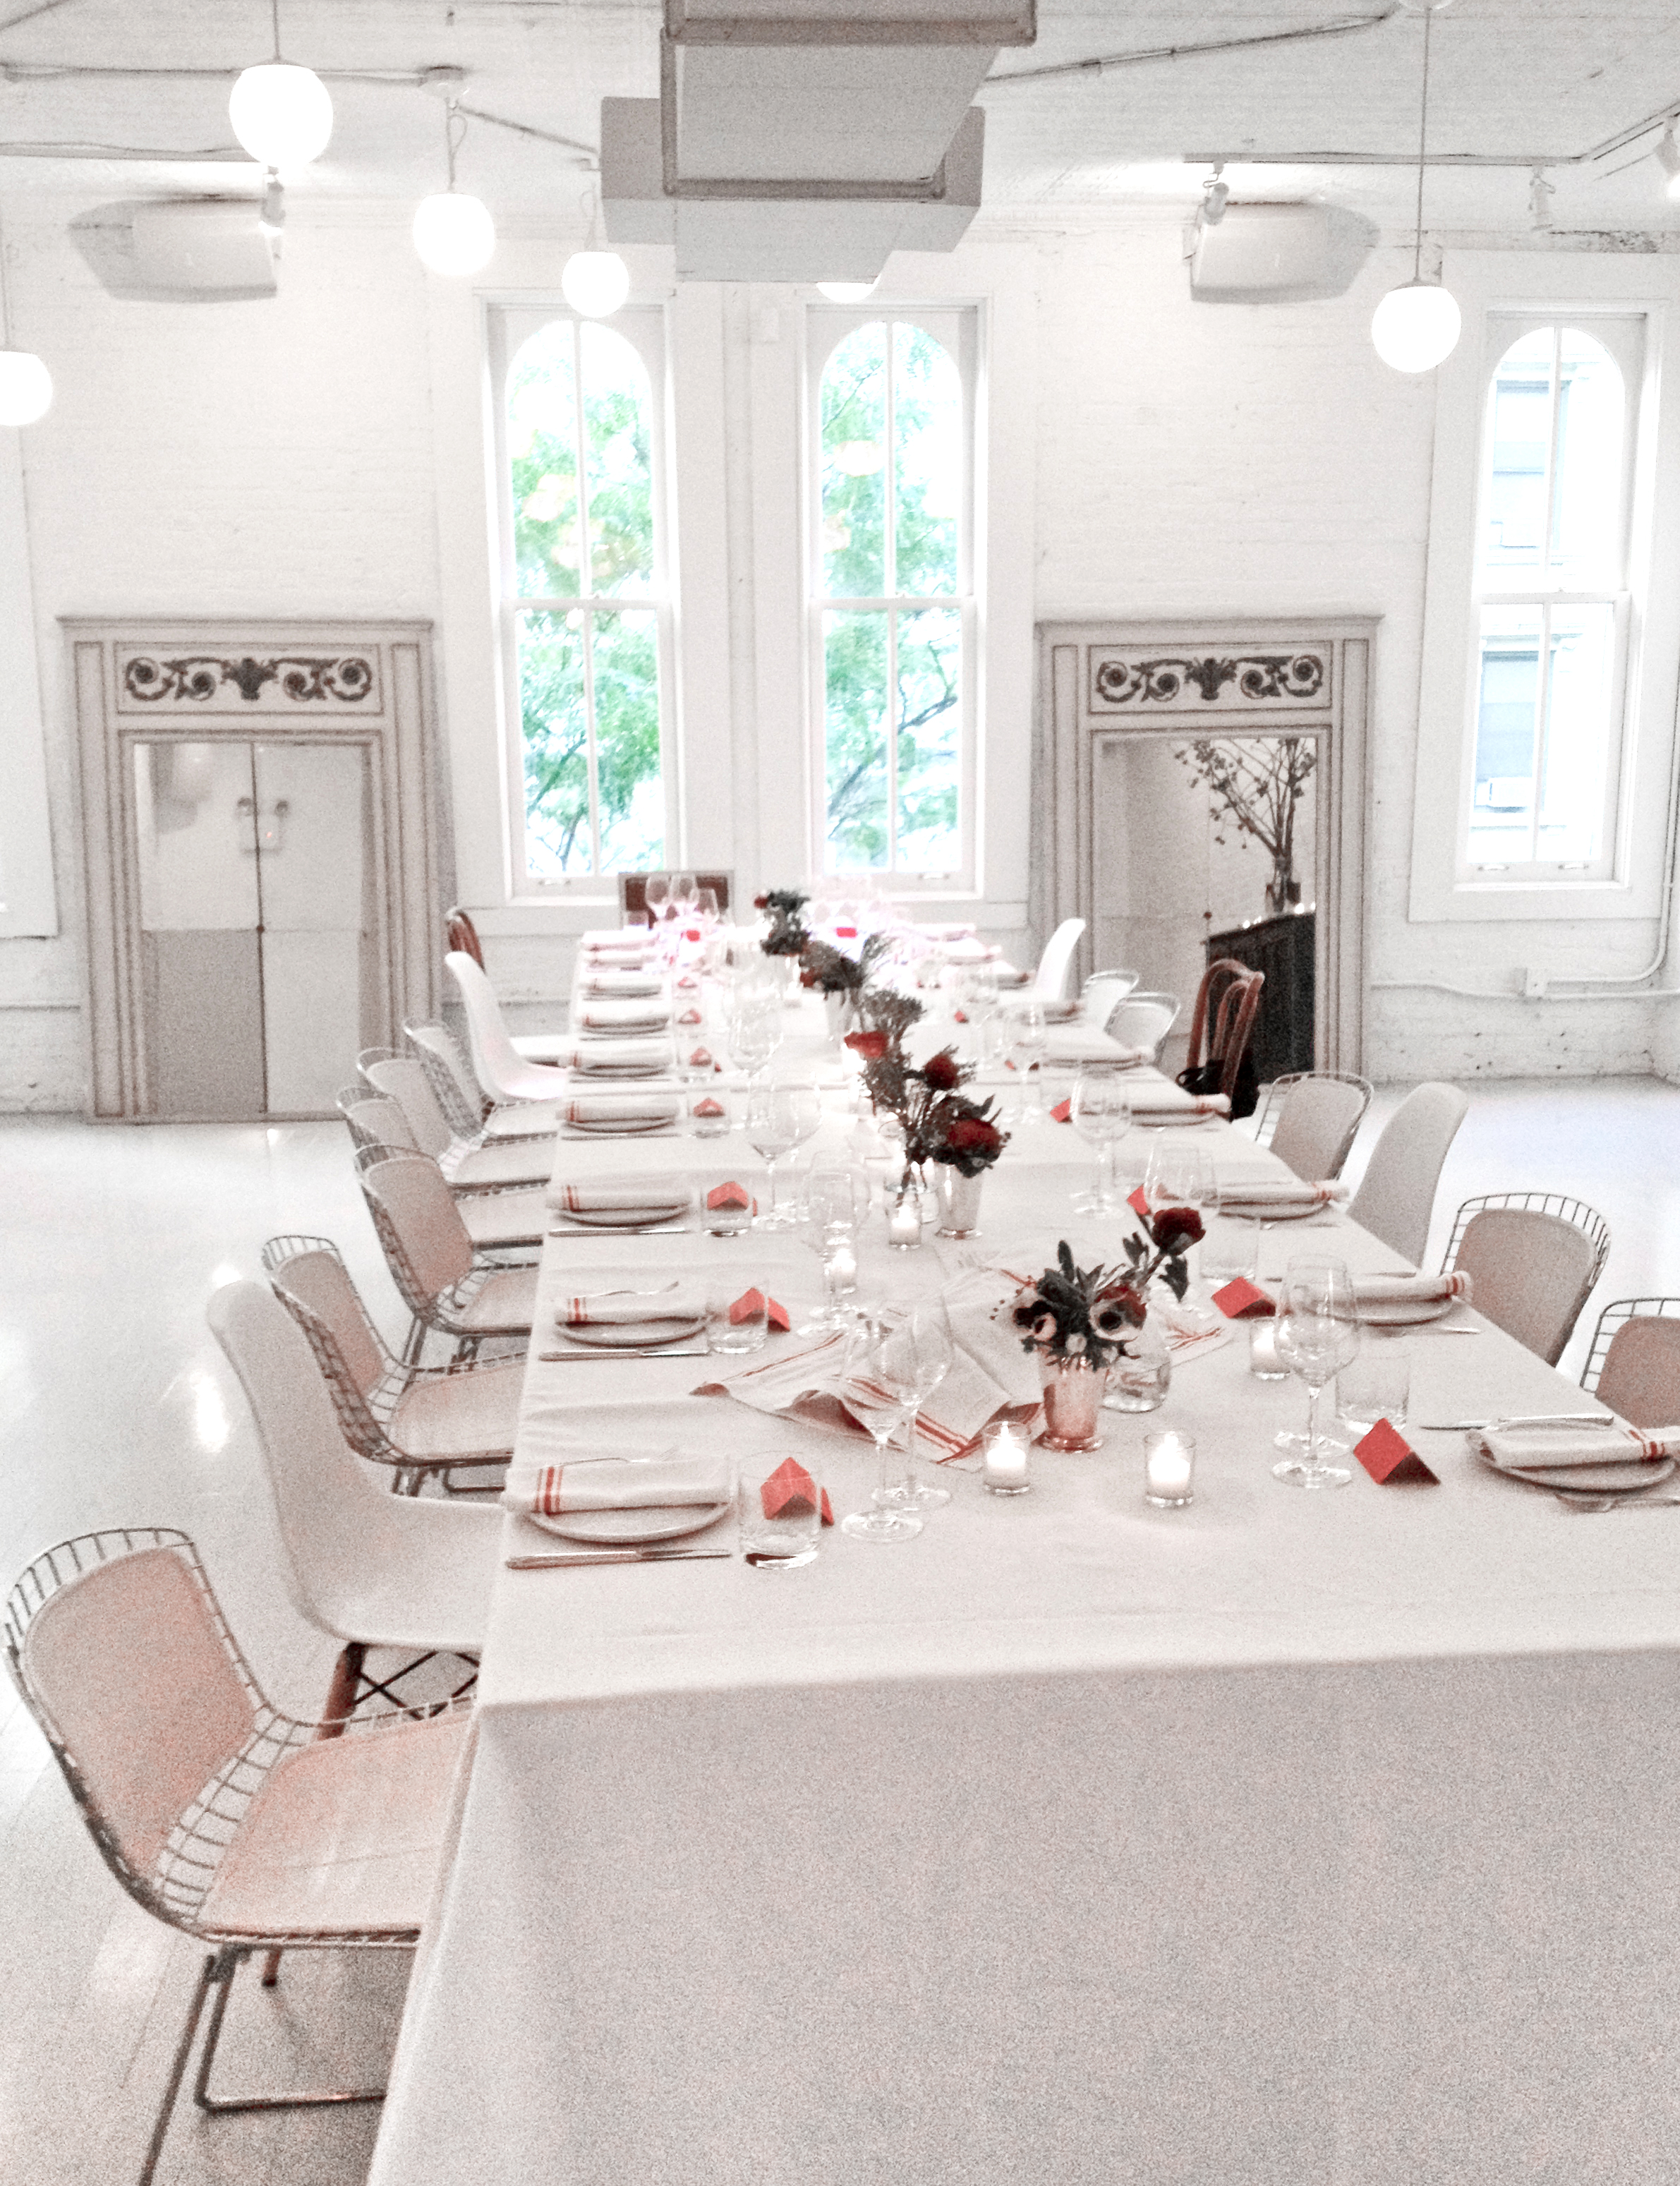 The setting for our dinner at Haven's Kitchen, photo: Najwa Kronfel